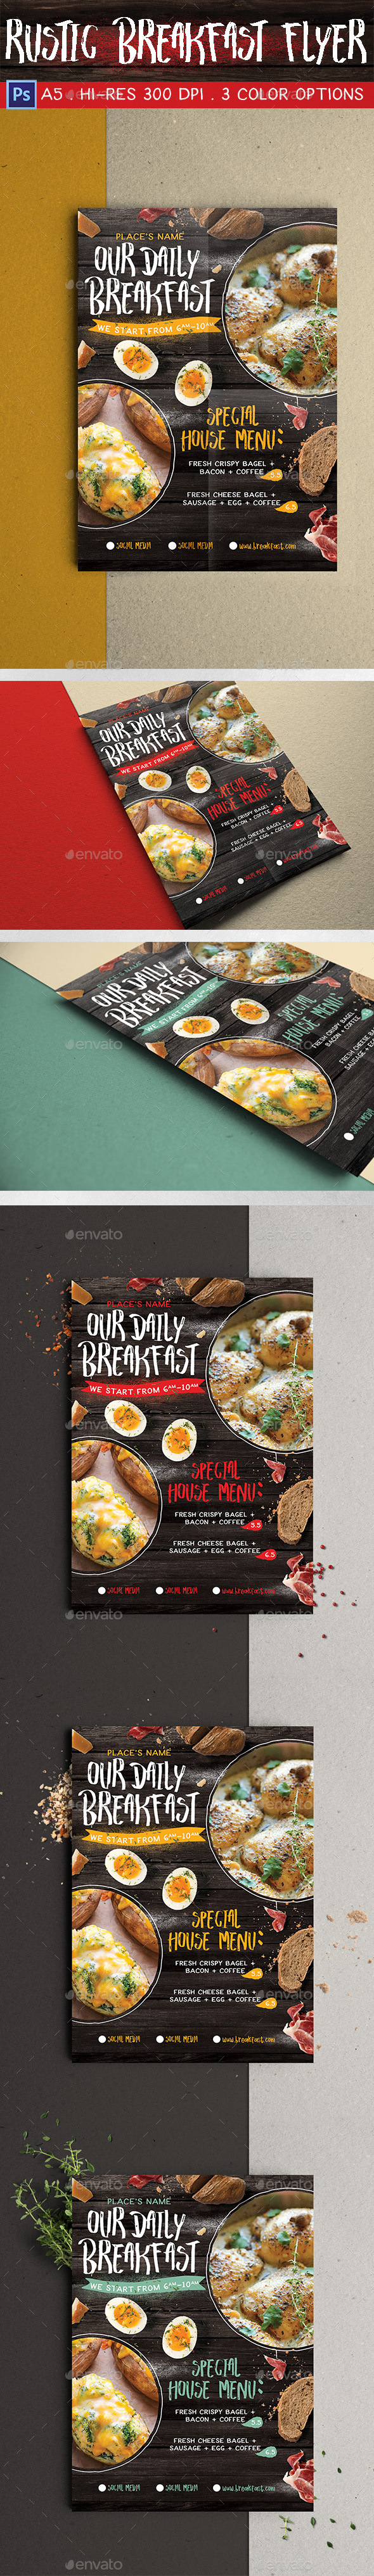 Rustic Breakfast Flyer - Miscellaneous Events